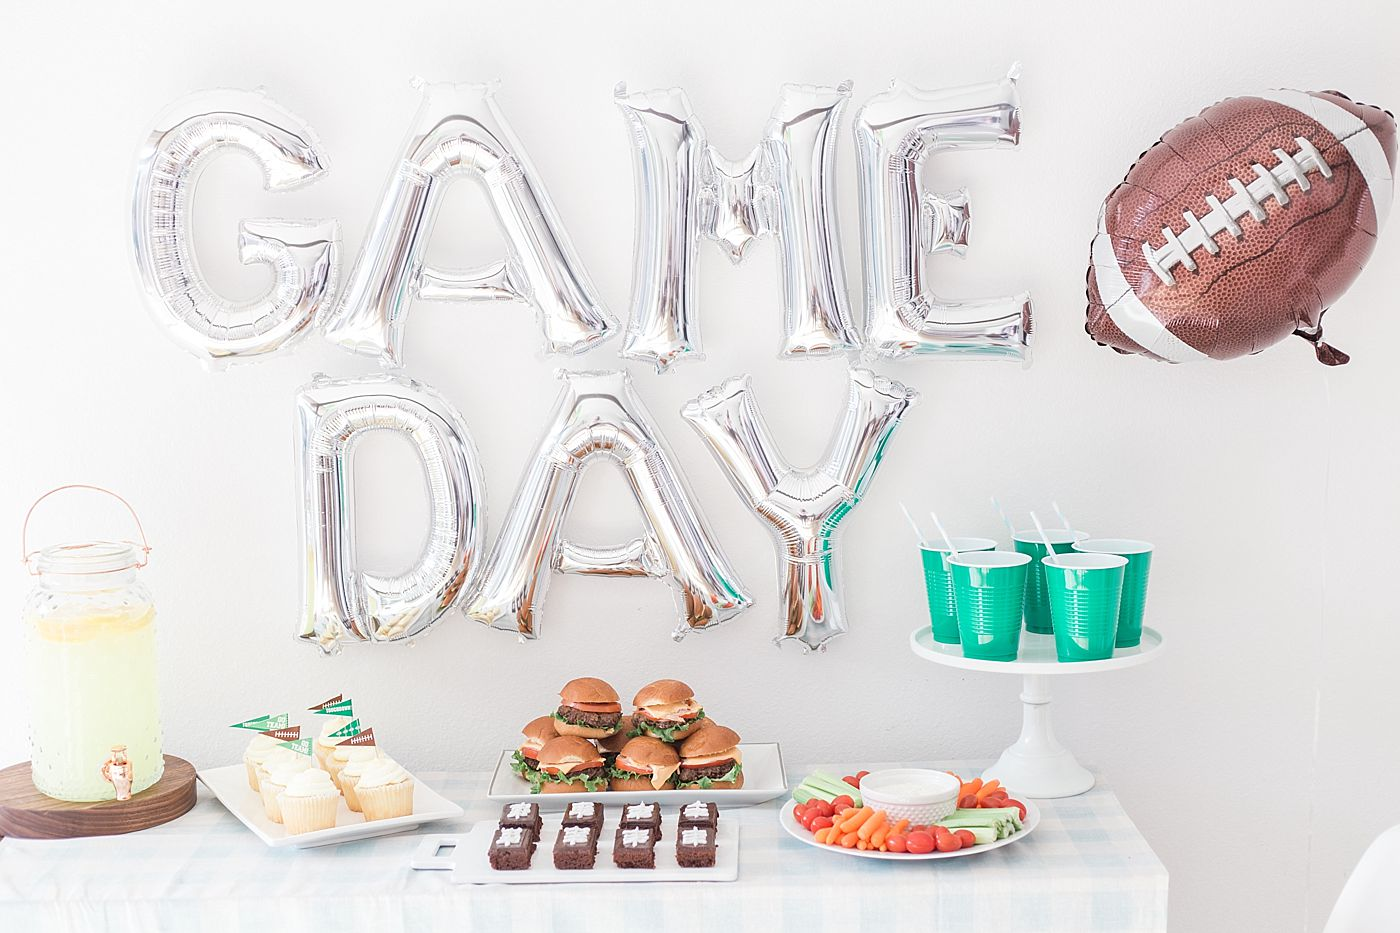 Game Day Fun - Best Friends for Frosting and UBER - Ashley Baumgartner - Sacramento Wedding Photography and Sacramento Wedding Photographer - Football Fun_0013.jpg